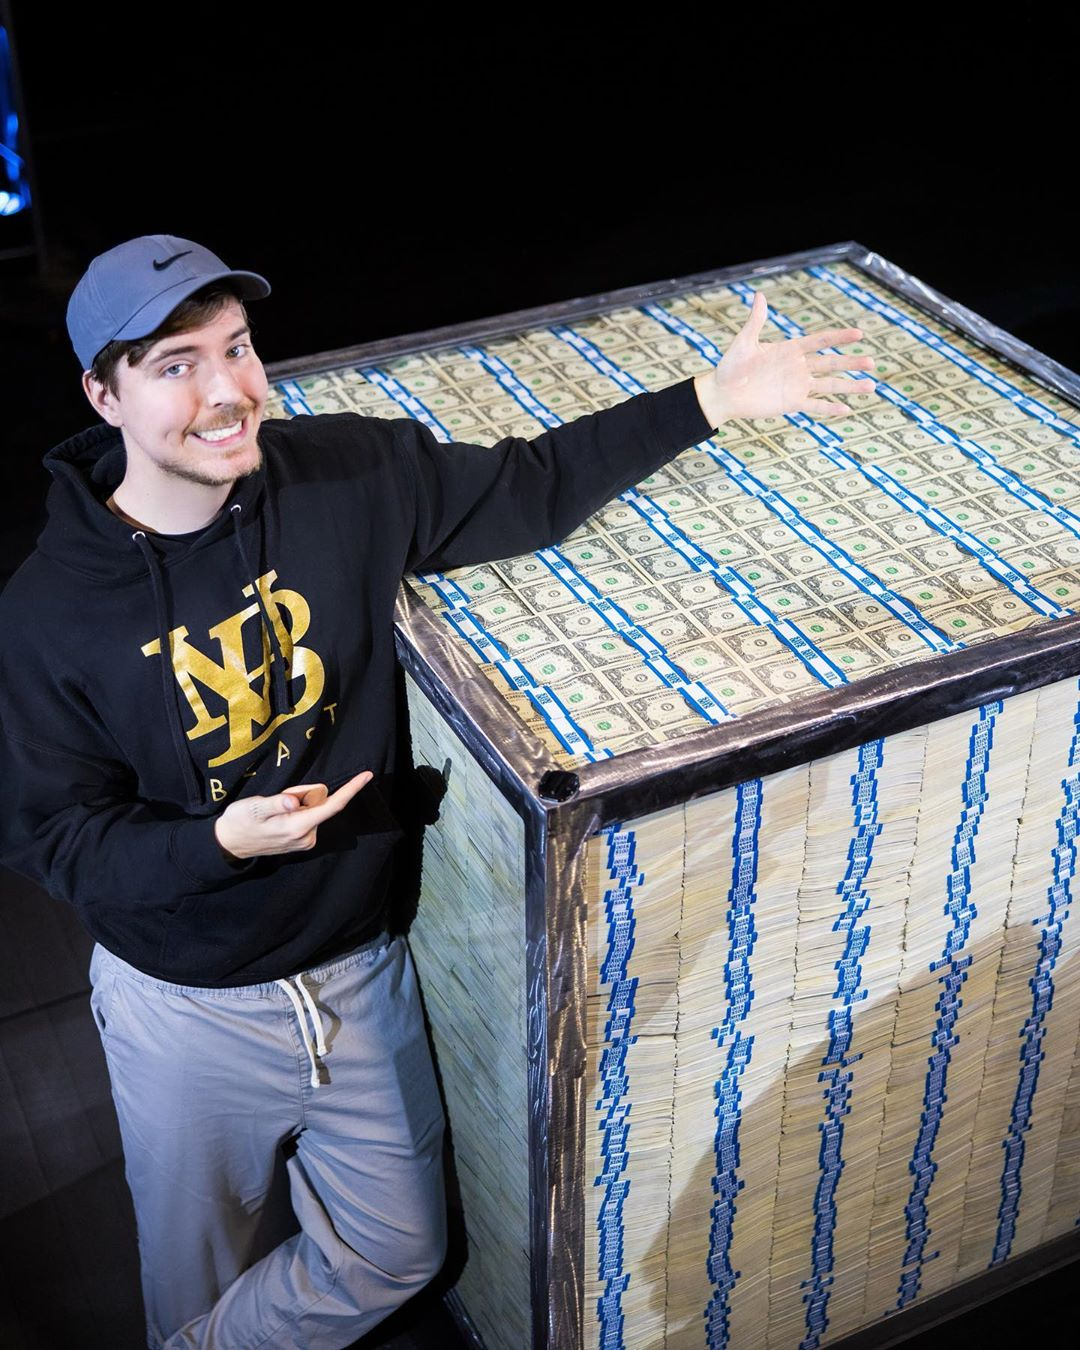 Mr Beast gives away millions of dollars